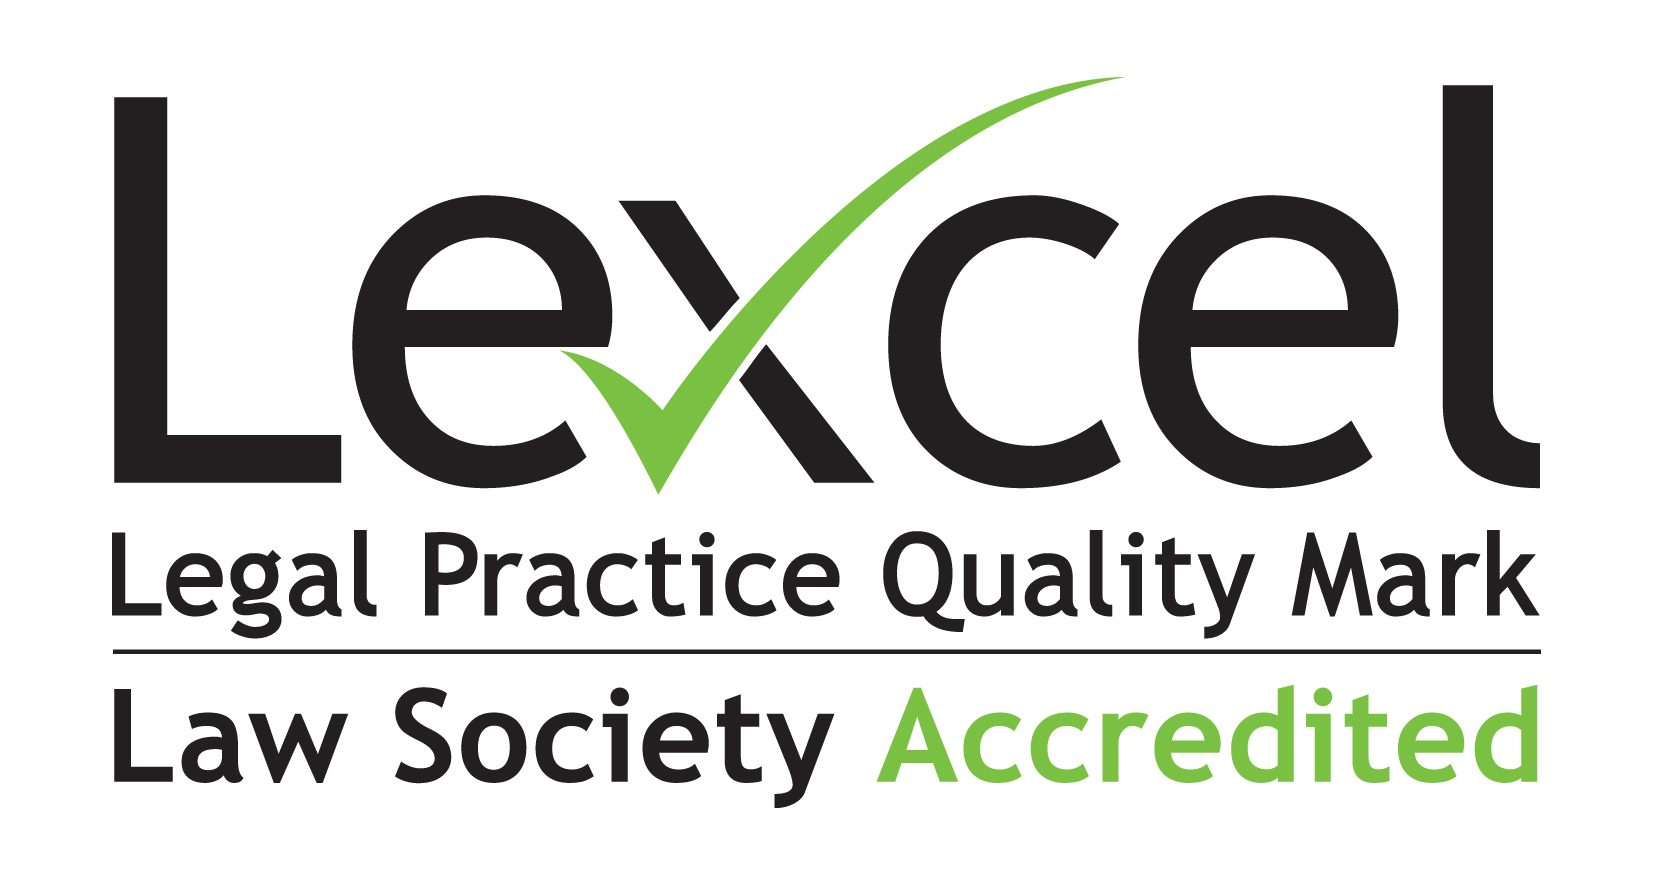 Lexcel accredited Sarah waddington